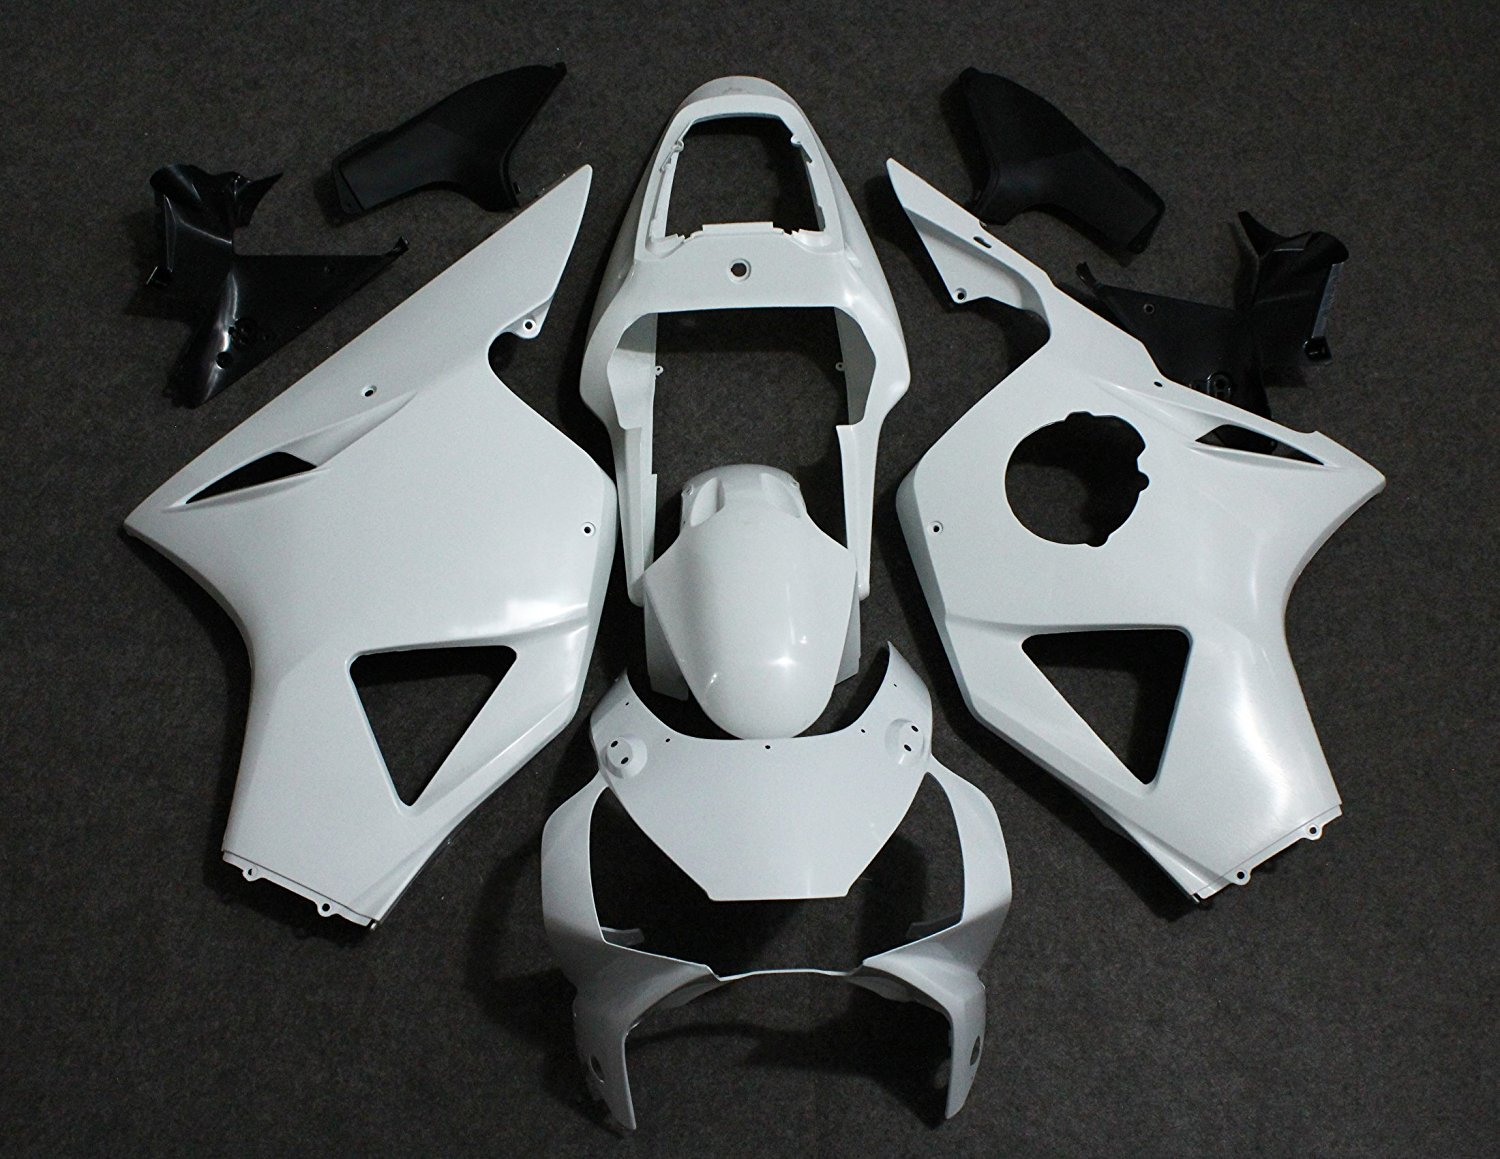 Motorcycle Unpainted Fairing For Honda CBR 954 900 RR 02 03 CBR954RR CBR900RR 2002 2003 Injection Mold Fairings Kit Bodywork